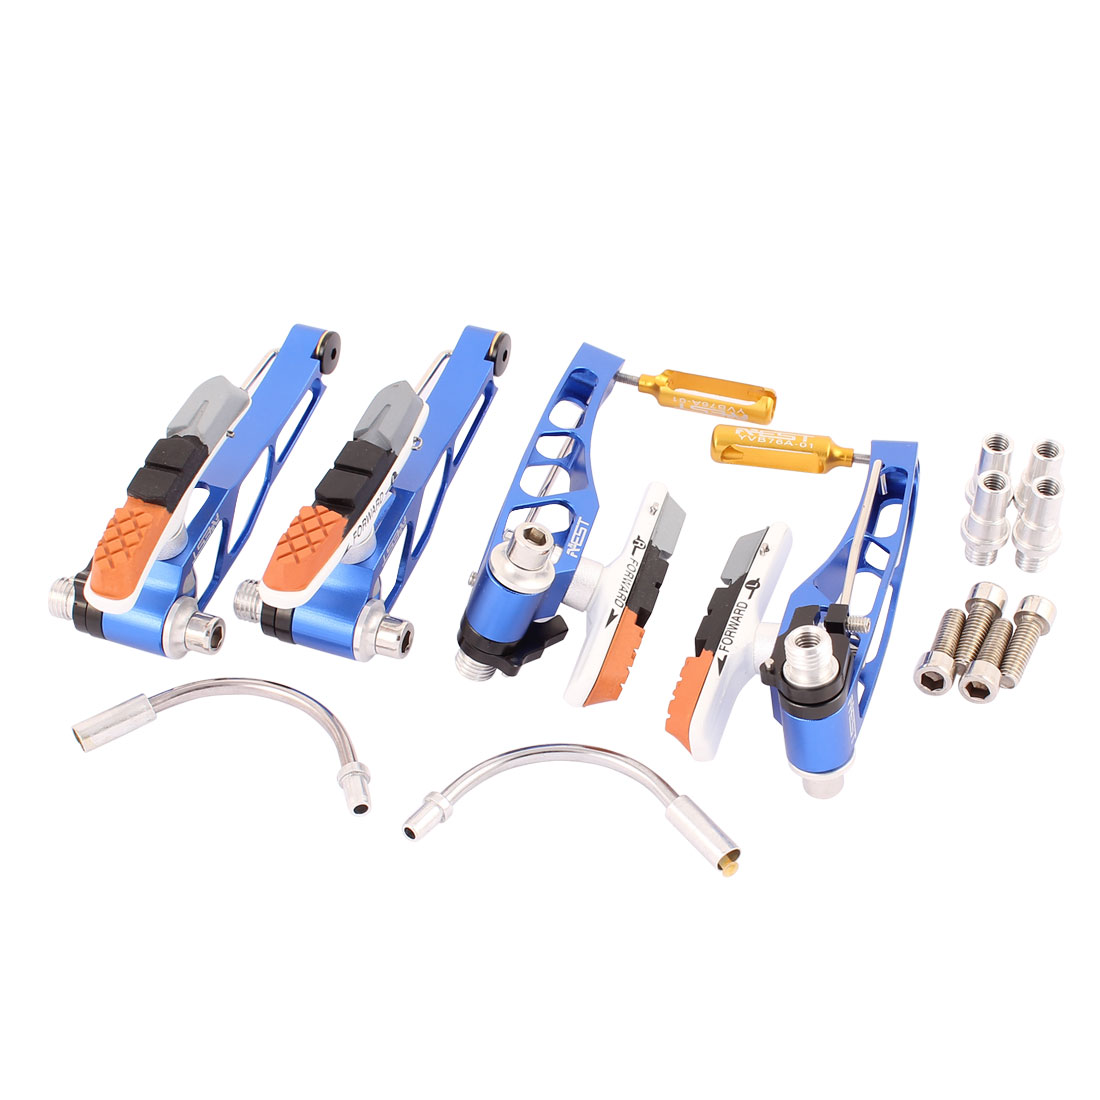 Blue Aluminum V Brake Caliper Set for MTB Mountain Bike Bicycle